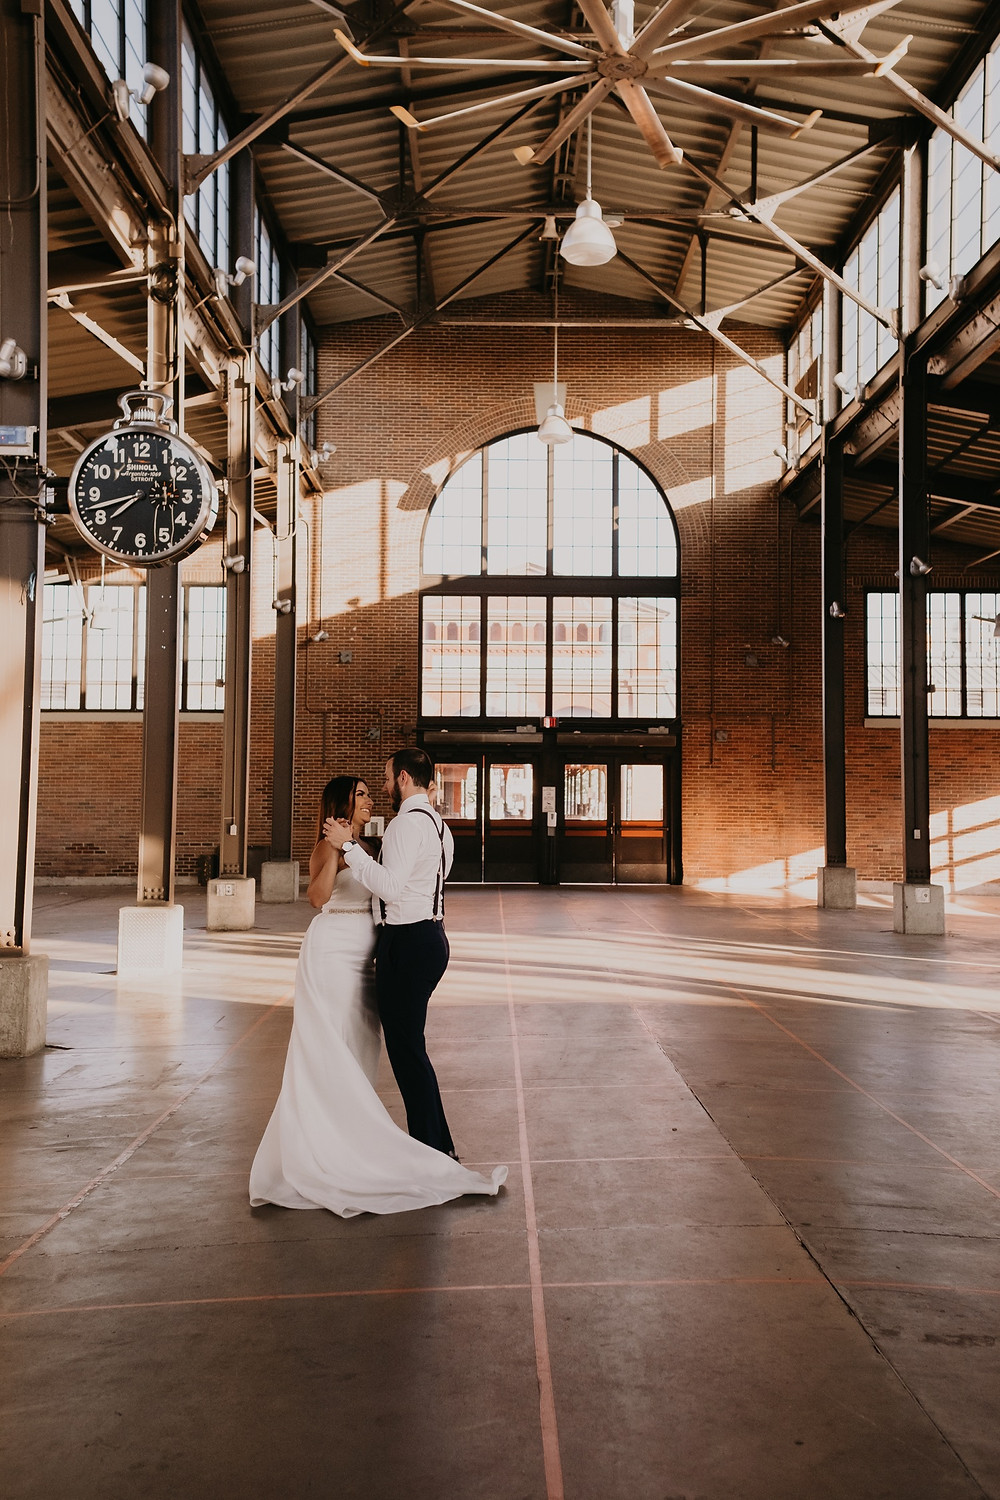 Bride and groom dancing at Eastern Market. Photographed by Nicole Leanne Photography.